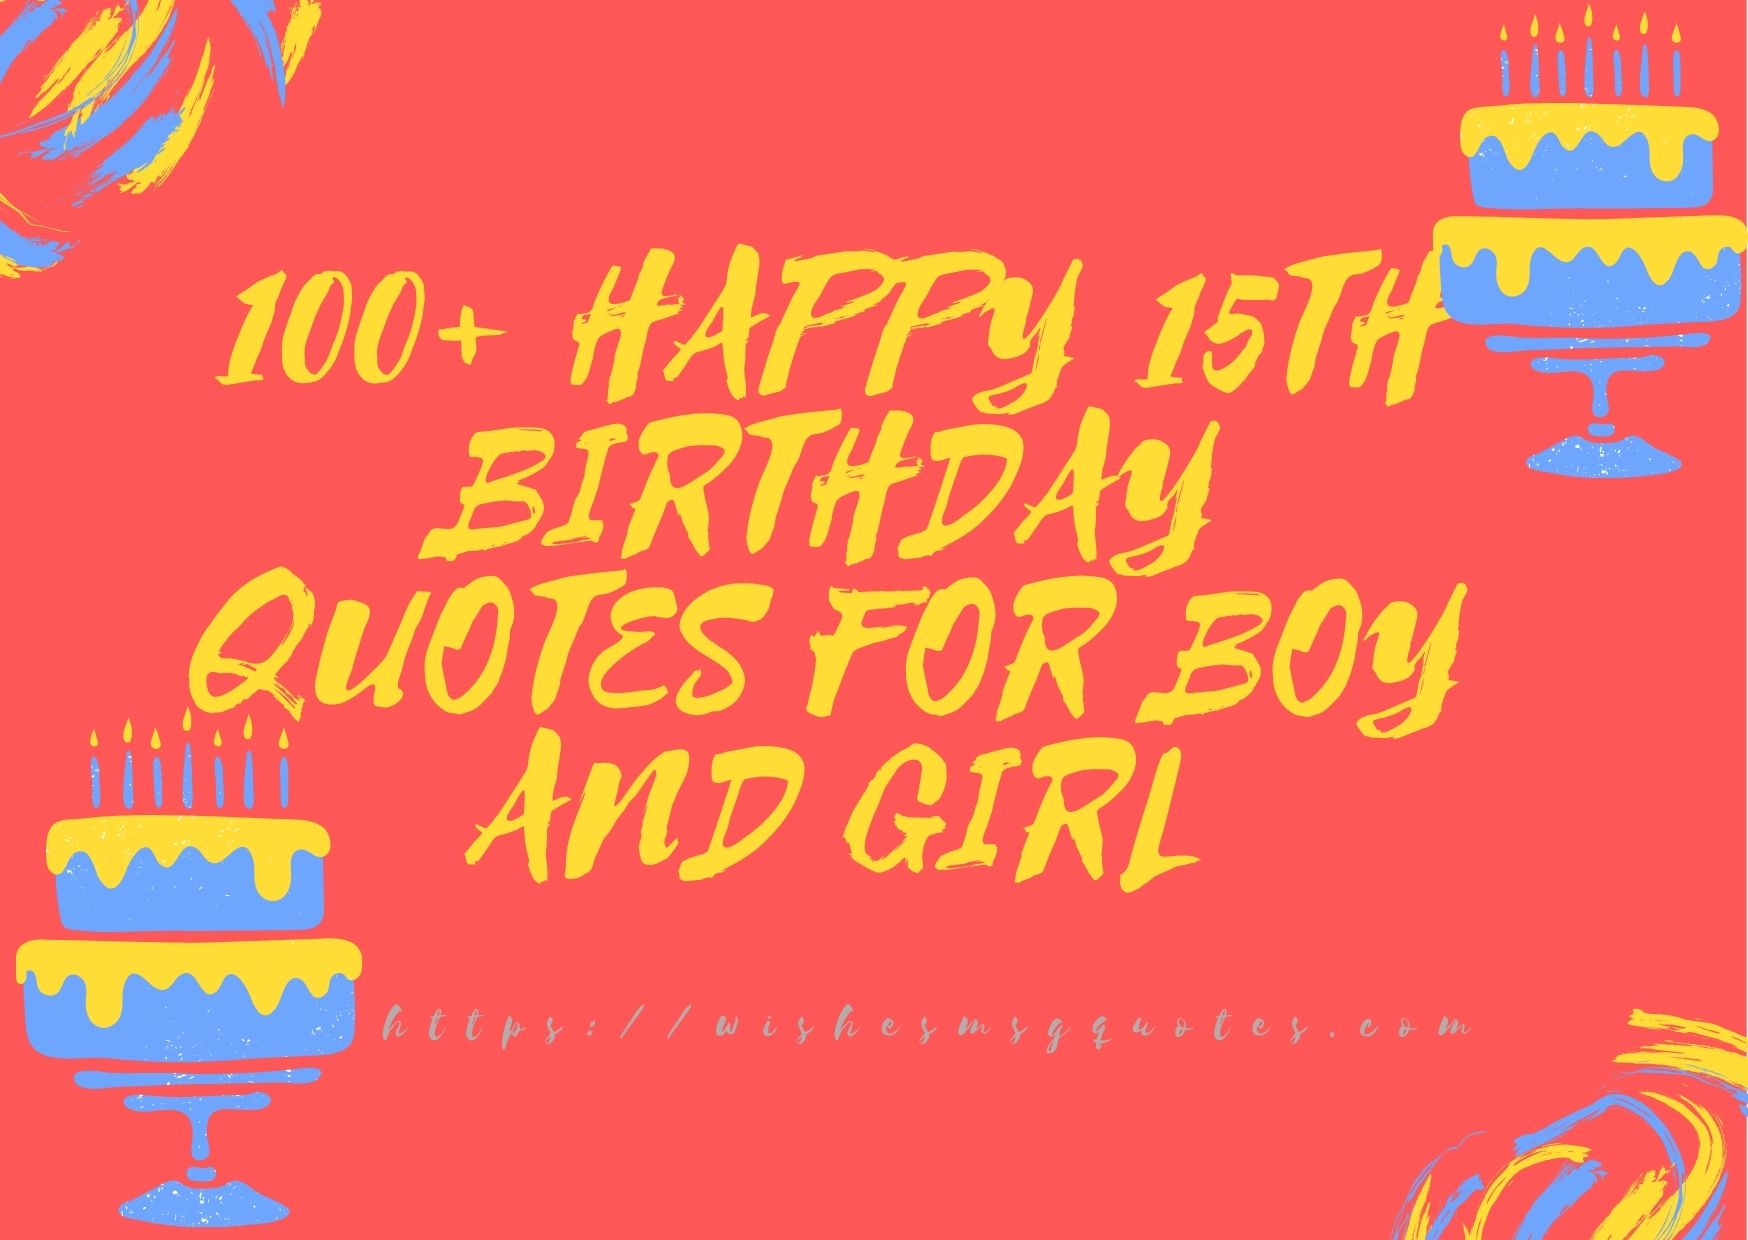 100+ Happy 15th Birthday Quotes For Boy And Girl